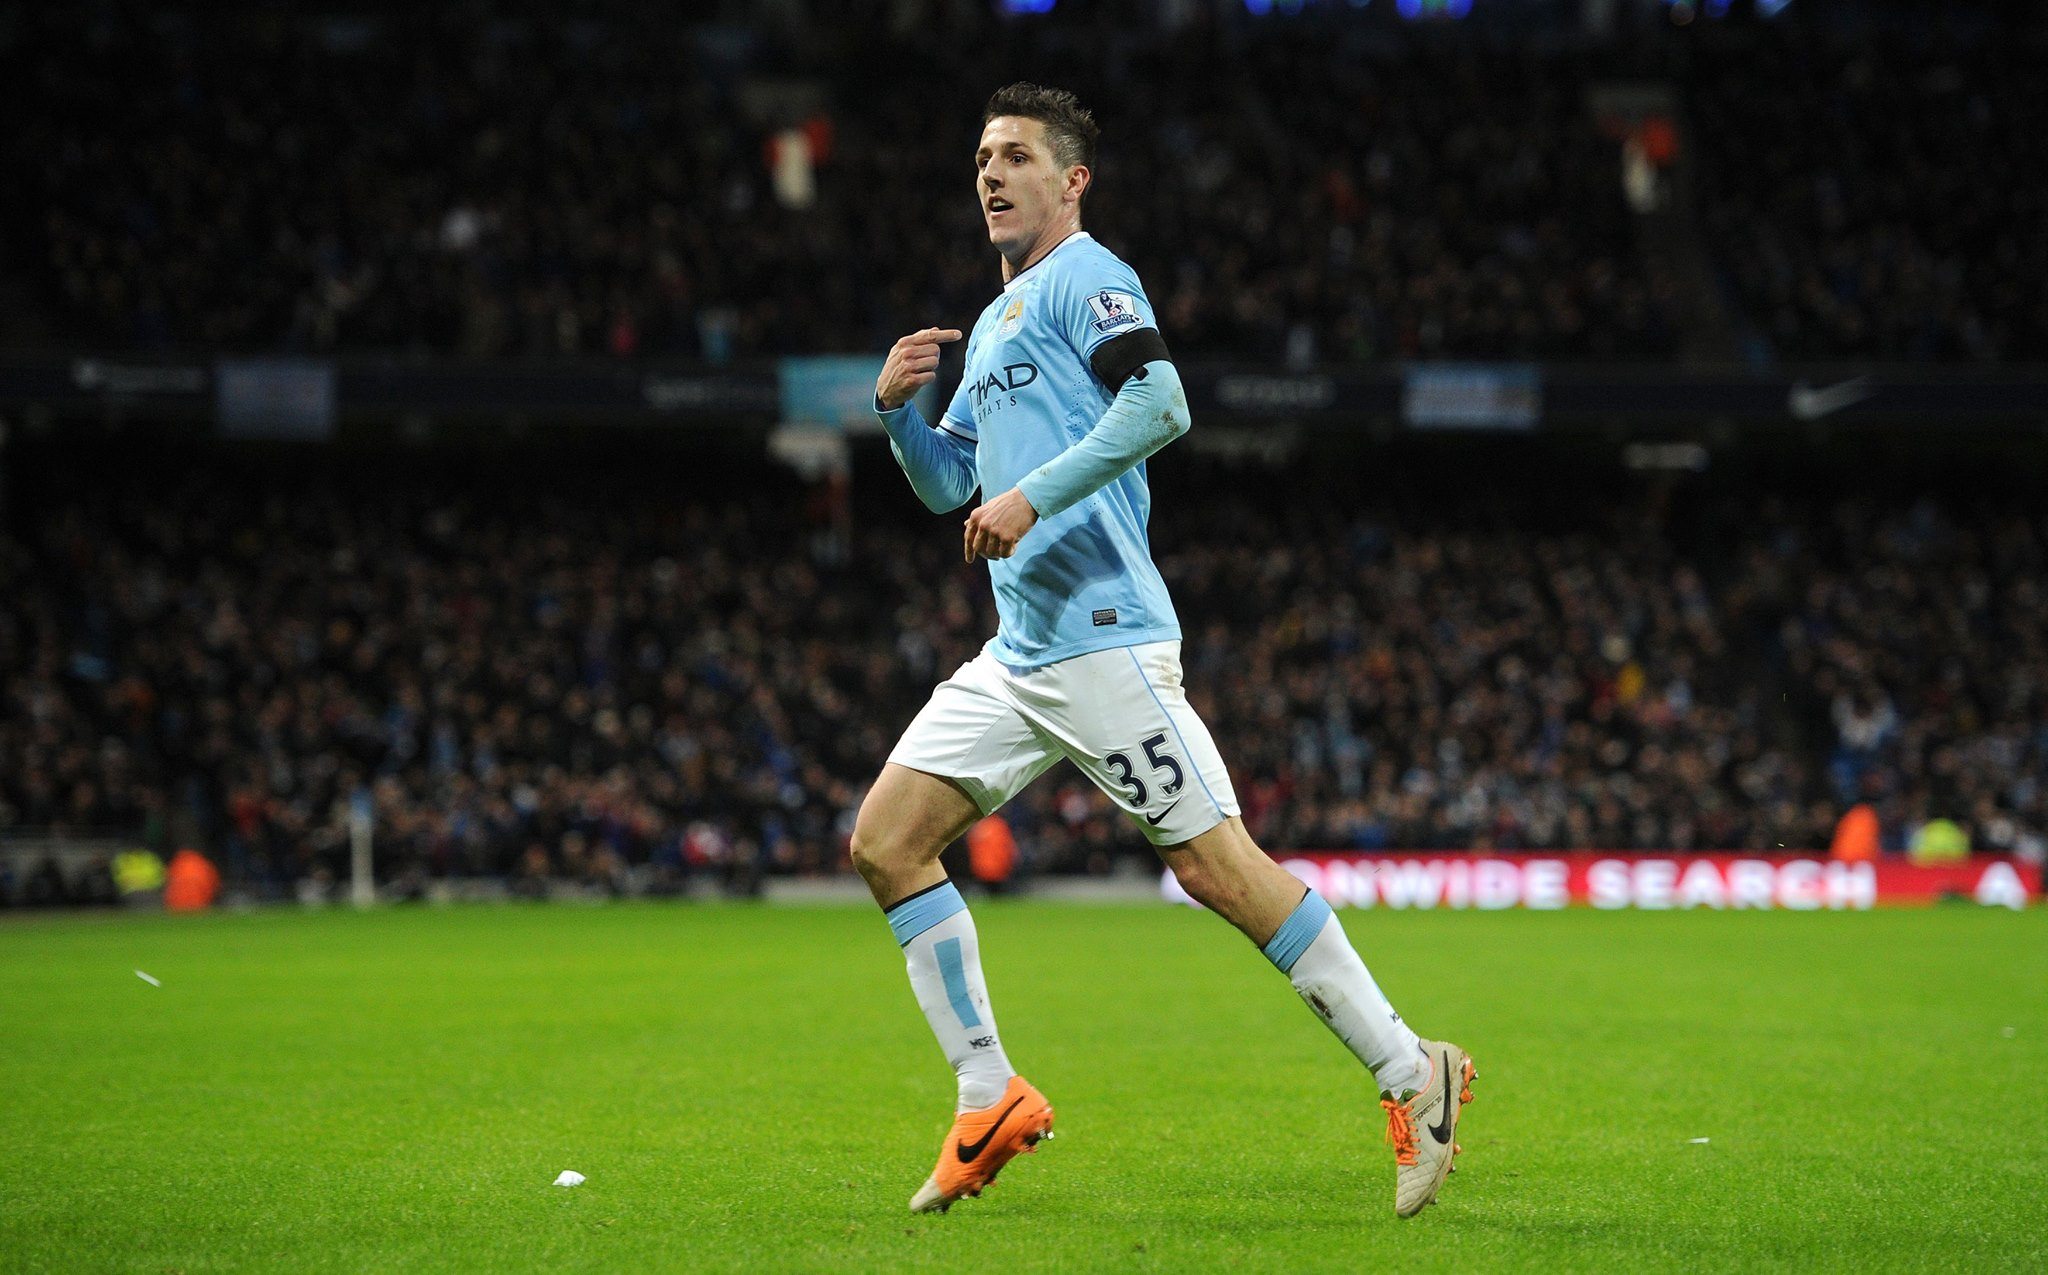 Jovetic joy - Stevan delight as City progress past Chelsea in the FA Cup  Courtesy @MCFC